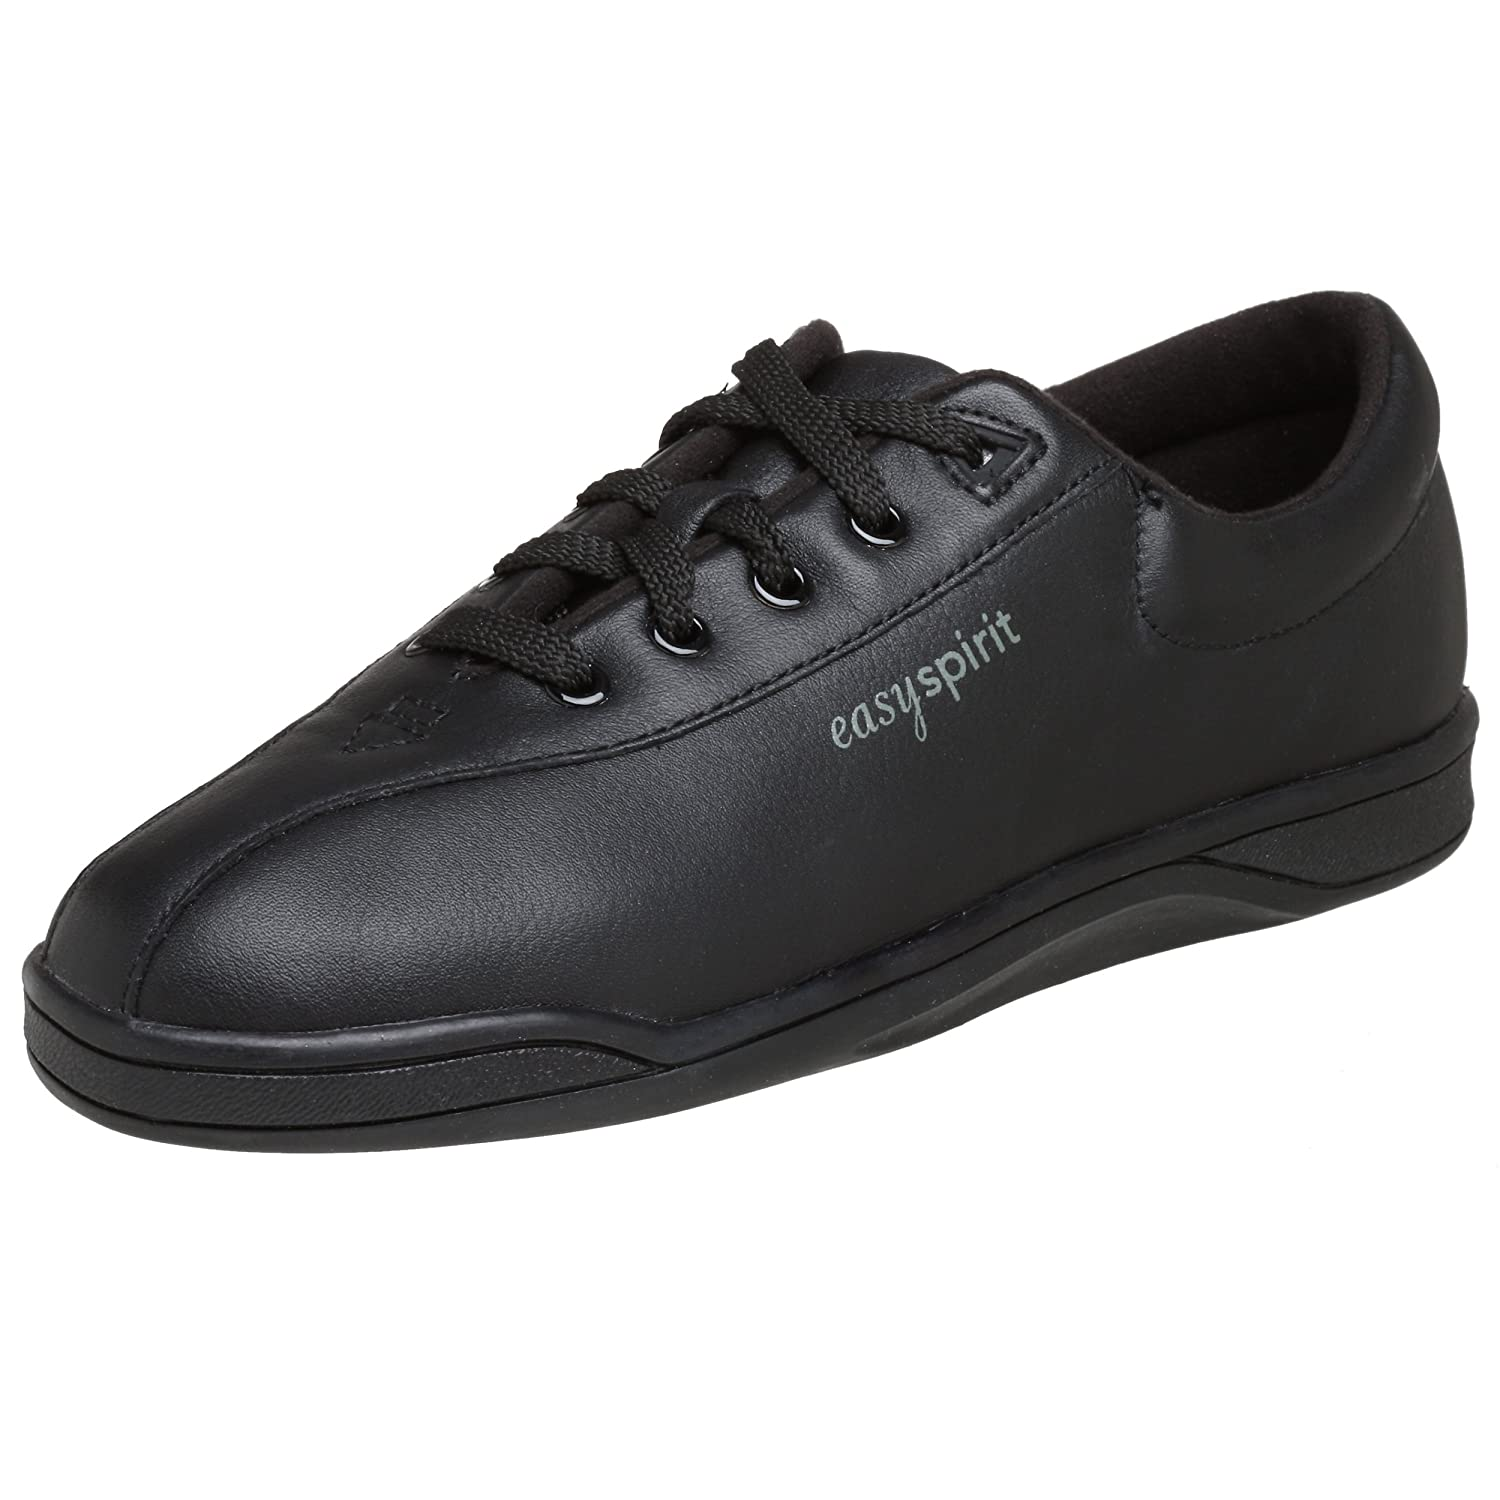 Easy Spirit AP1 Sport Walking Shoe B000F5TMYU 7.5 3A US|Black Leather